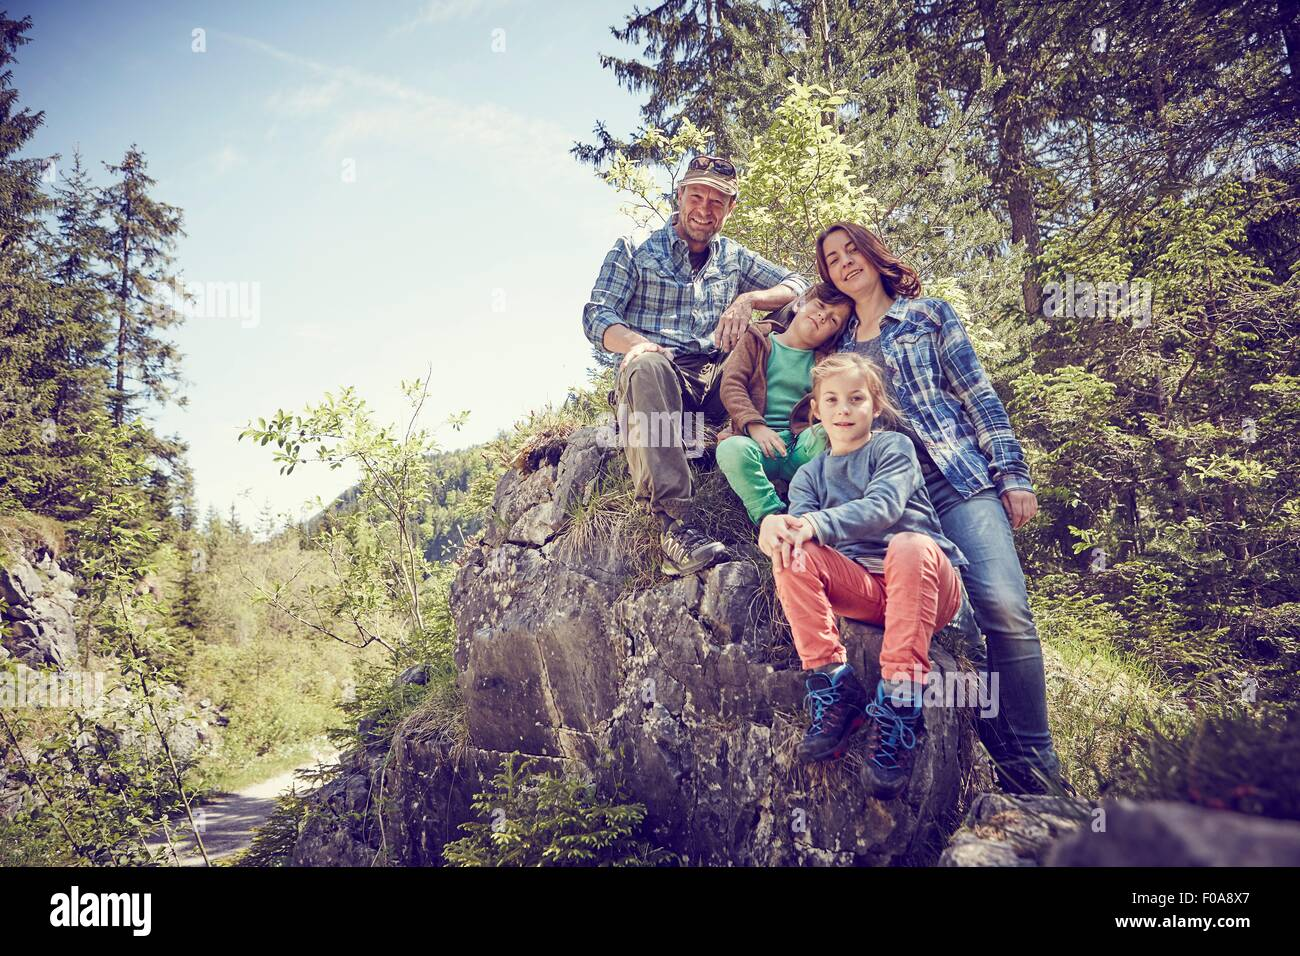 Portrait of family sitting on rock in forest Photo Stock